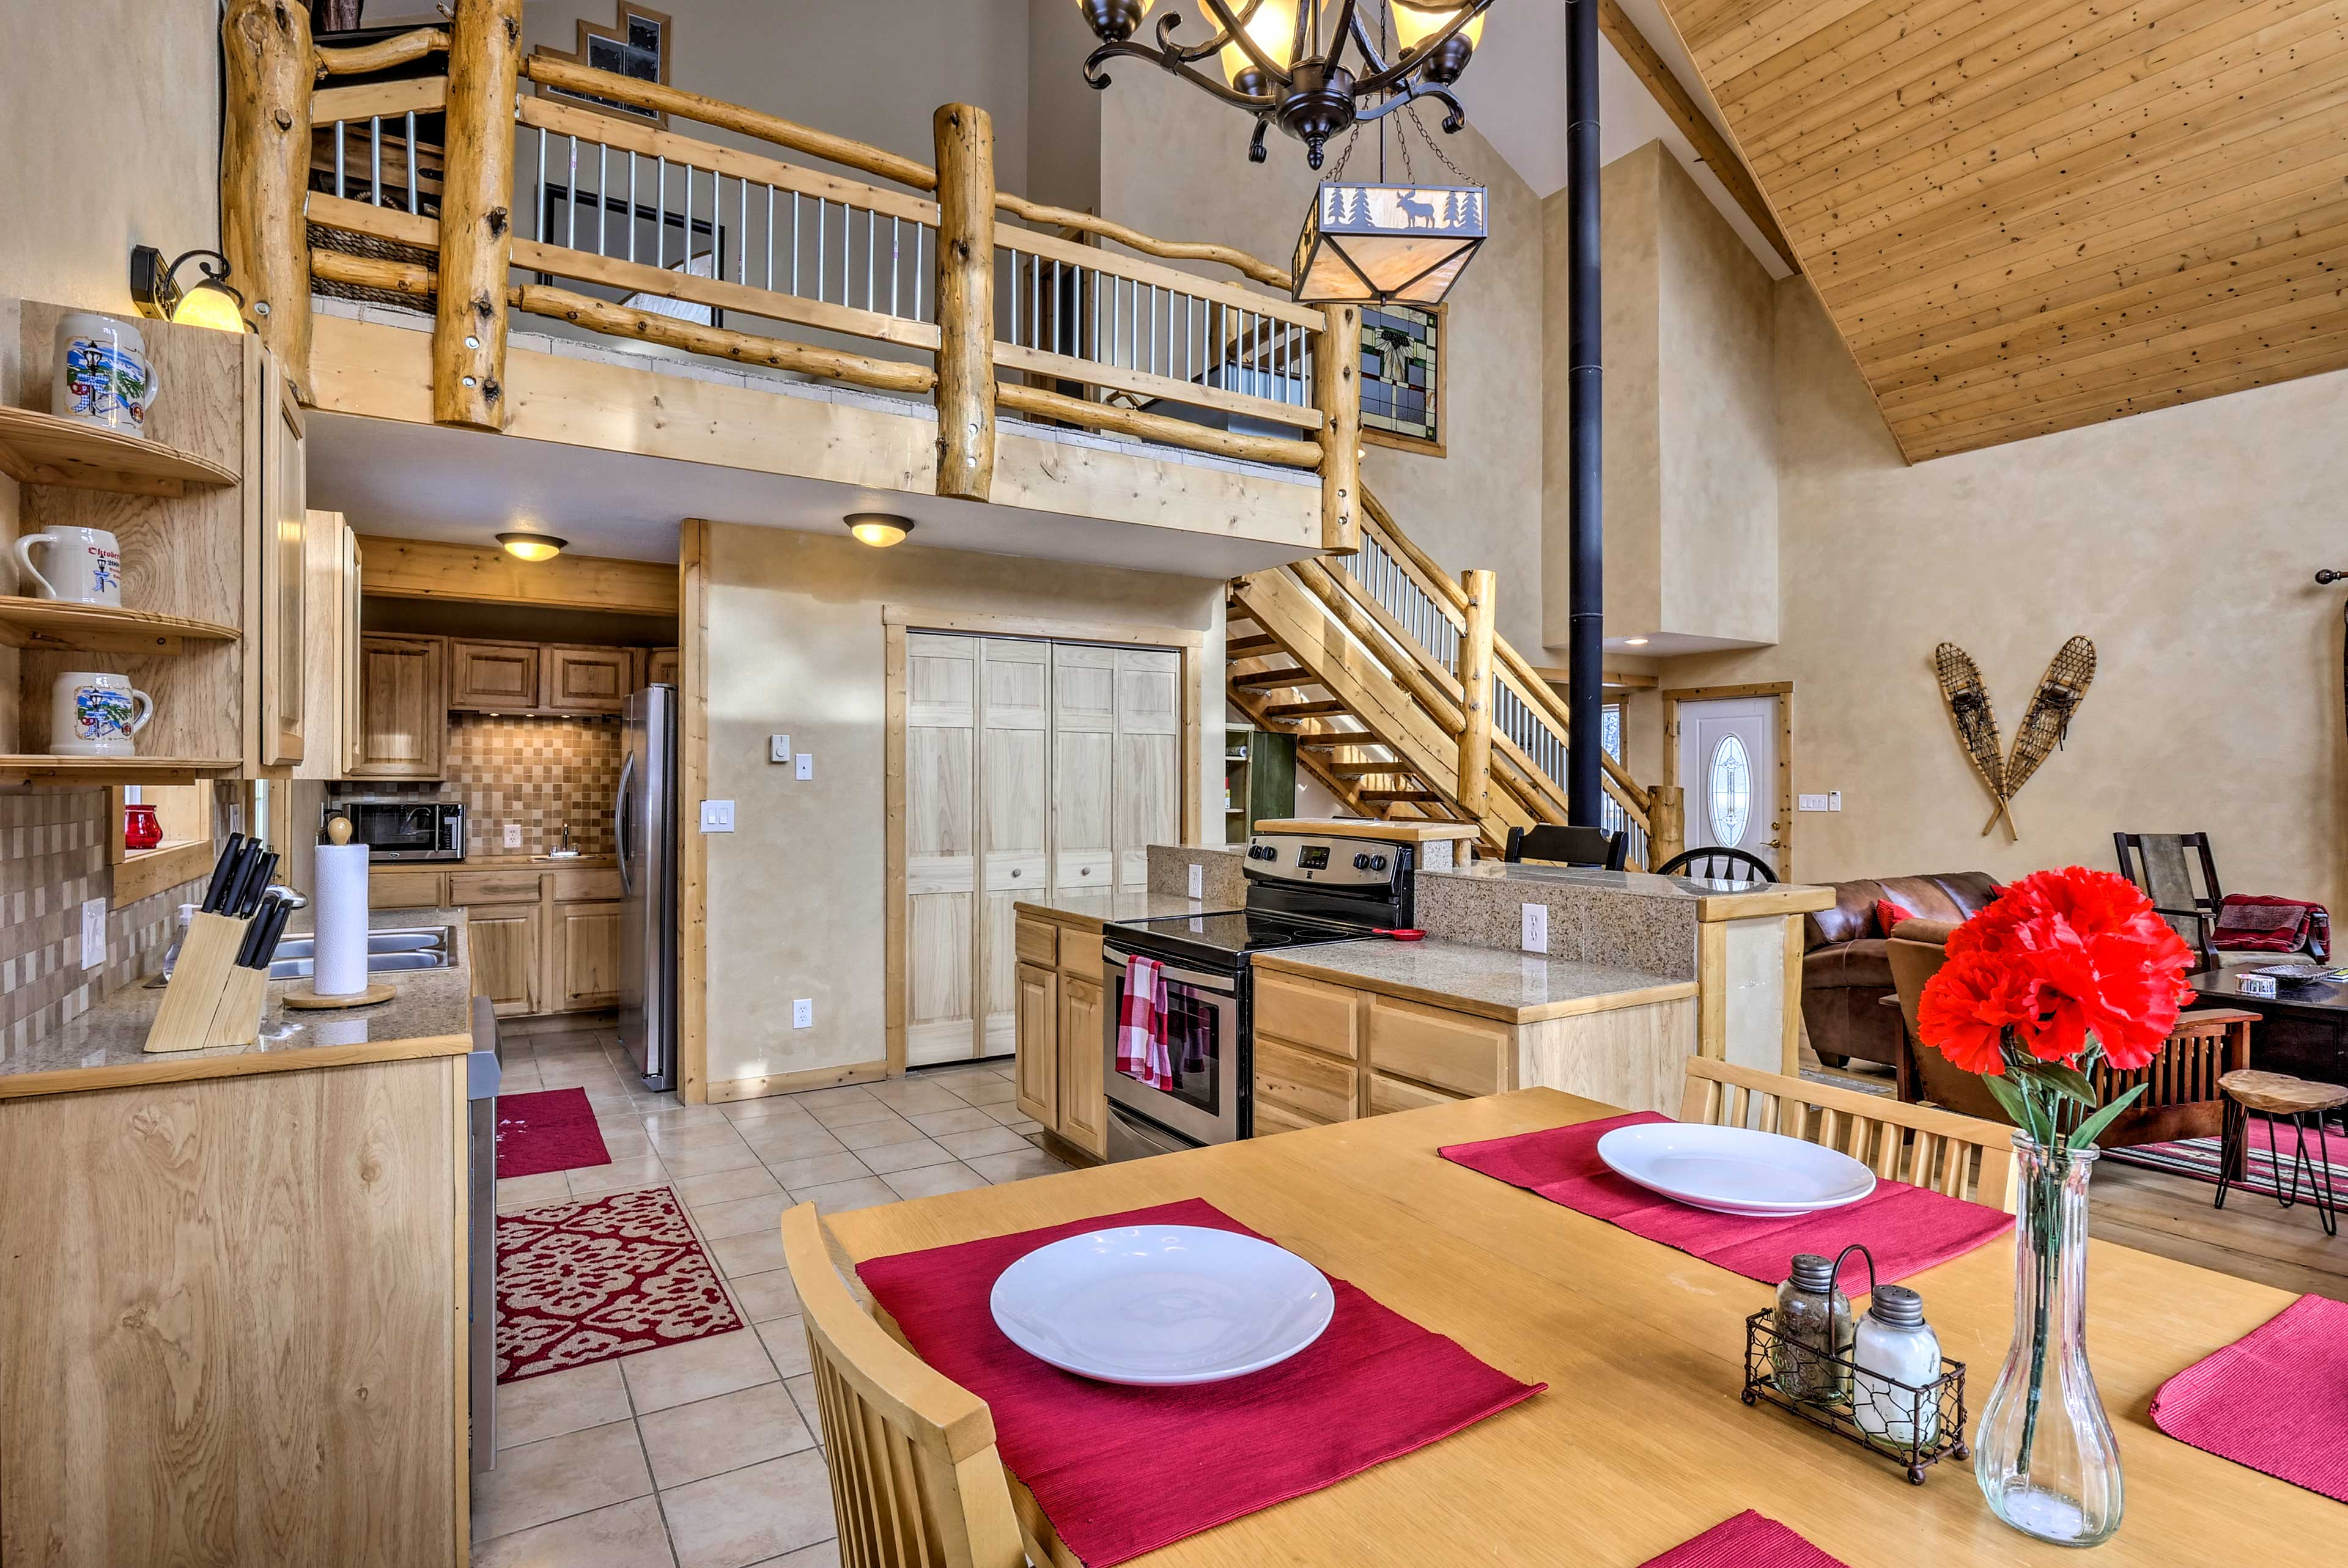 This vacation rental boasts all the modern essentials.